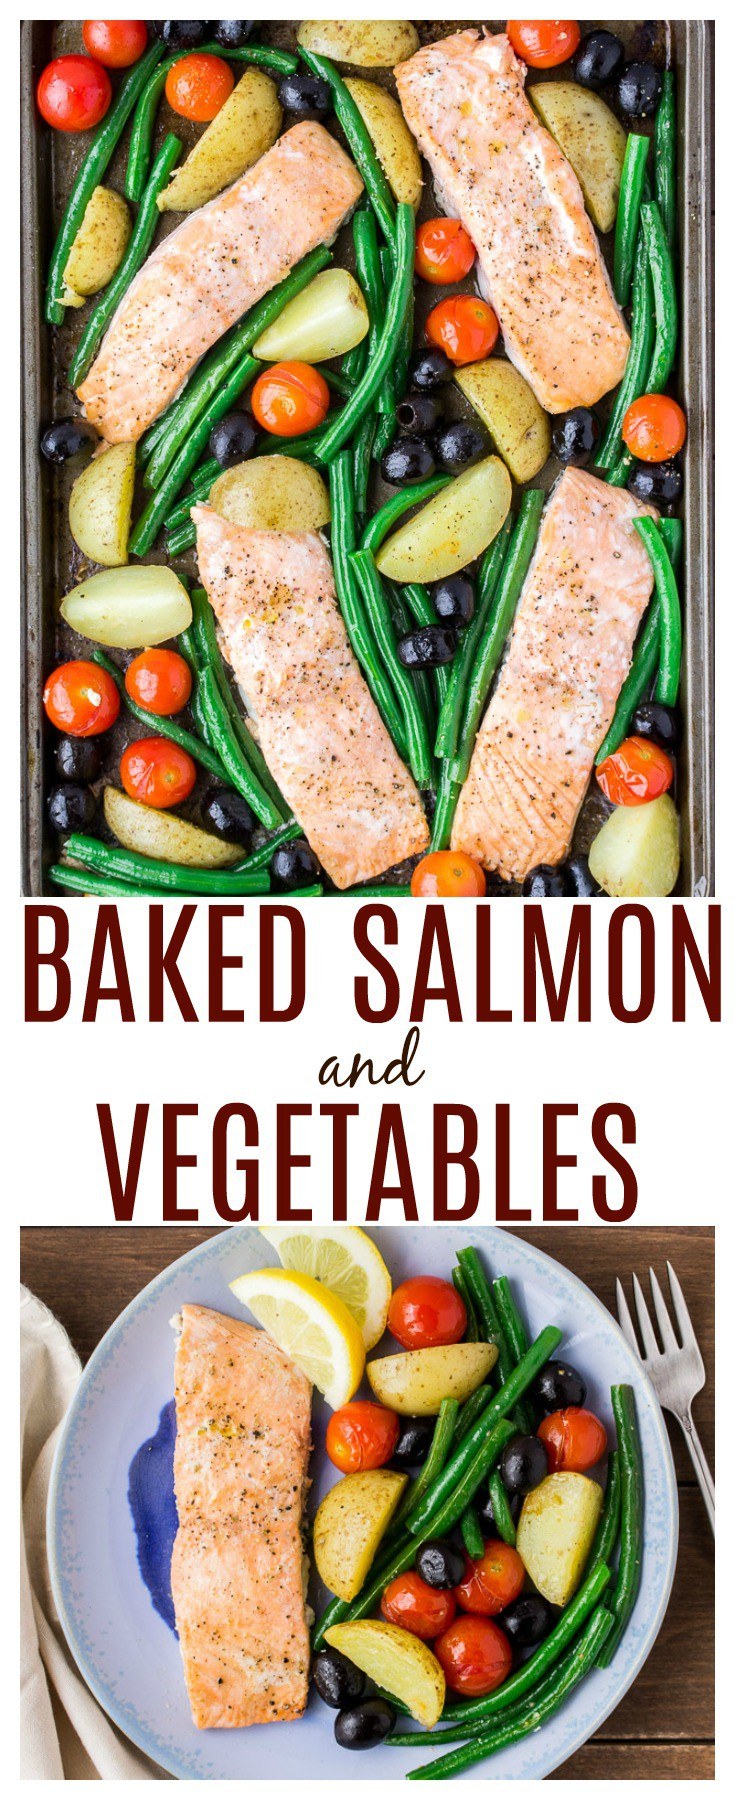 Baked Salmon and Vegetables is an easy recipe to help simplify busy weeknights. This tasty salmon sheet pan recipe can be made in less than 30 minutes! | #ad #salmon #sheetpanrecipe #30minutemeals #glutenfree